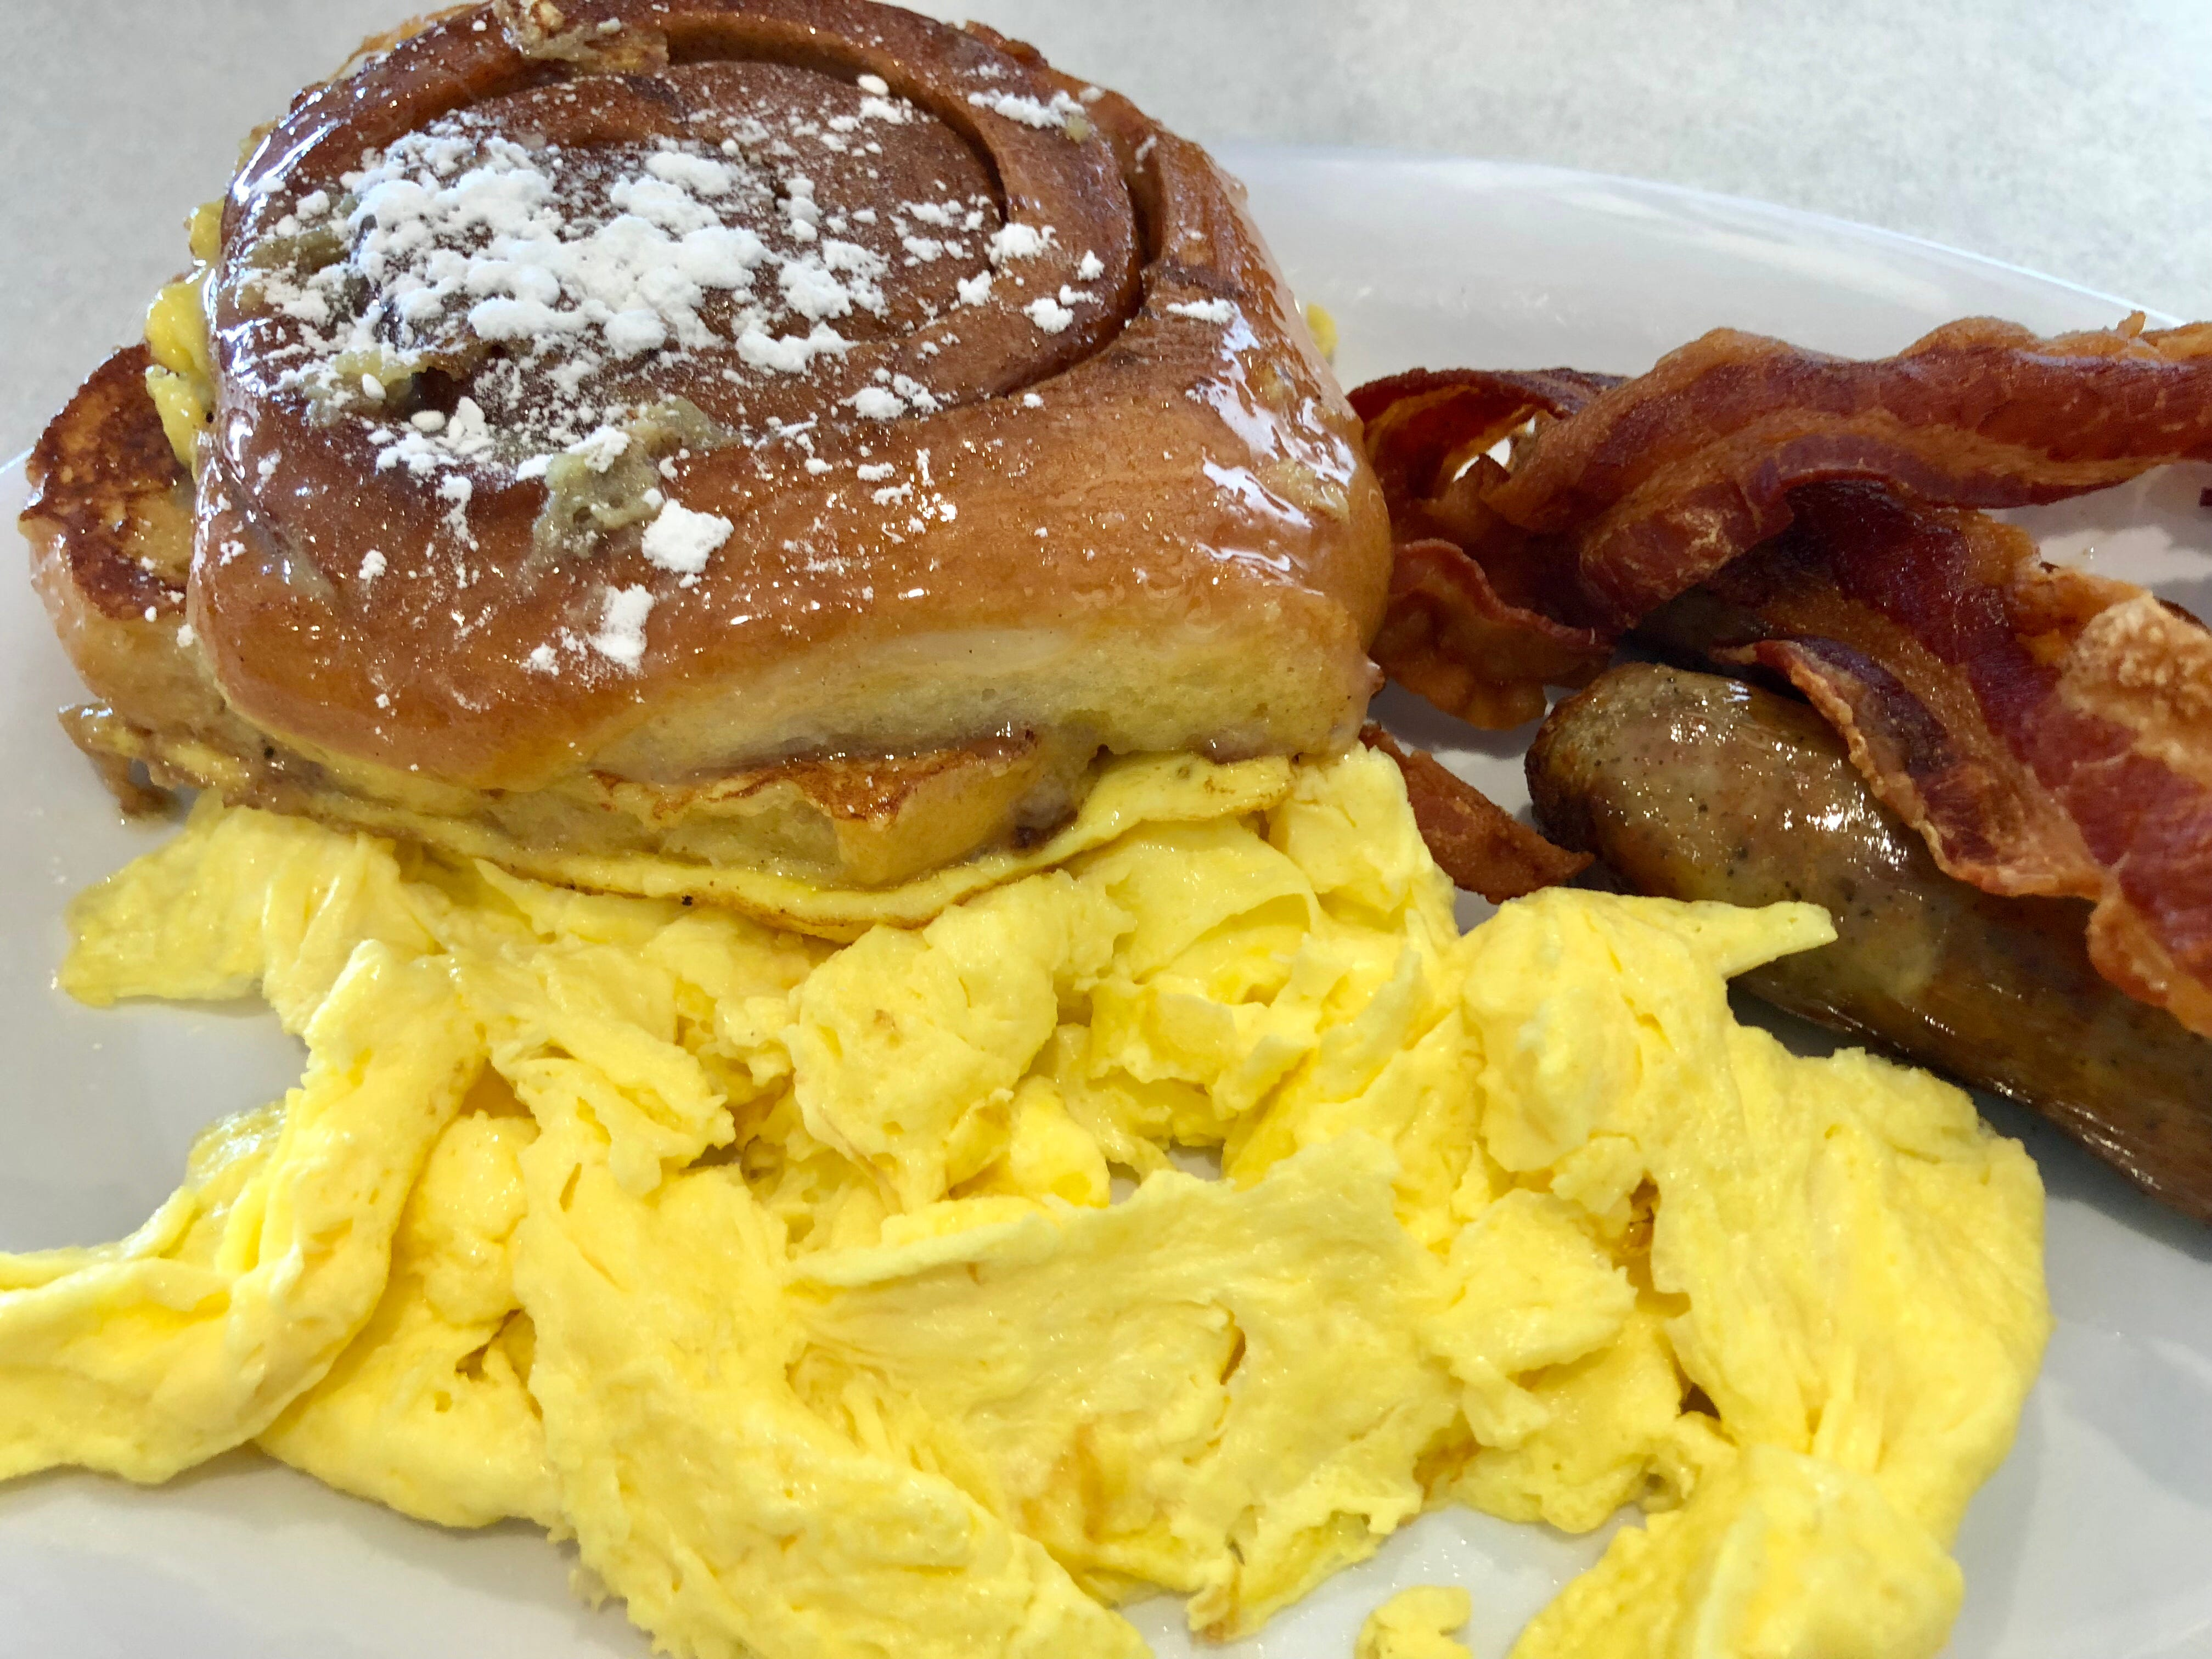 The LuLu Belle includes scrambled eggs, bacon, sausage and cinnamon roll French toast.